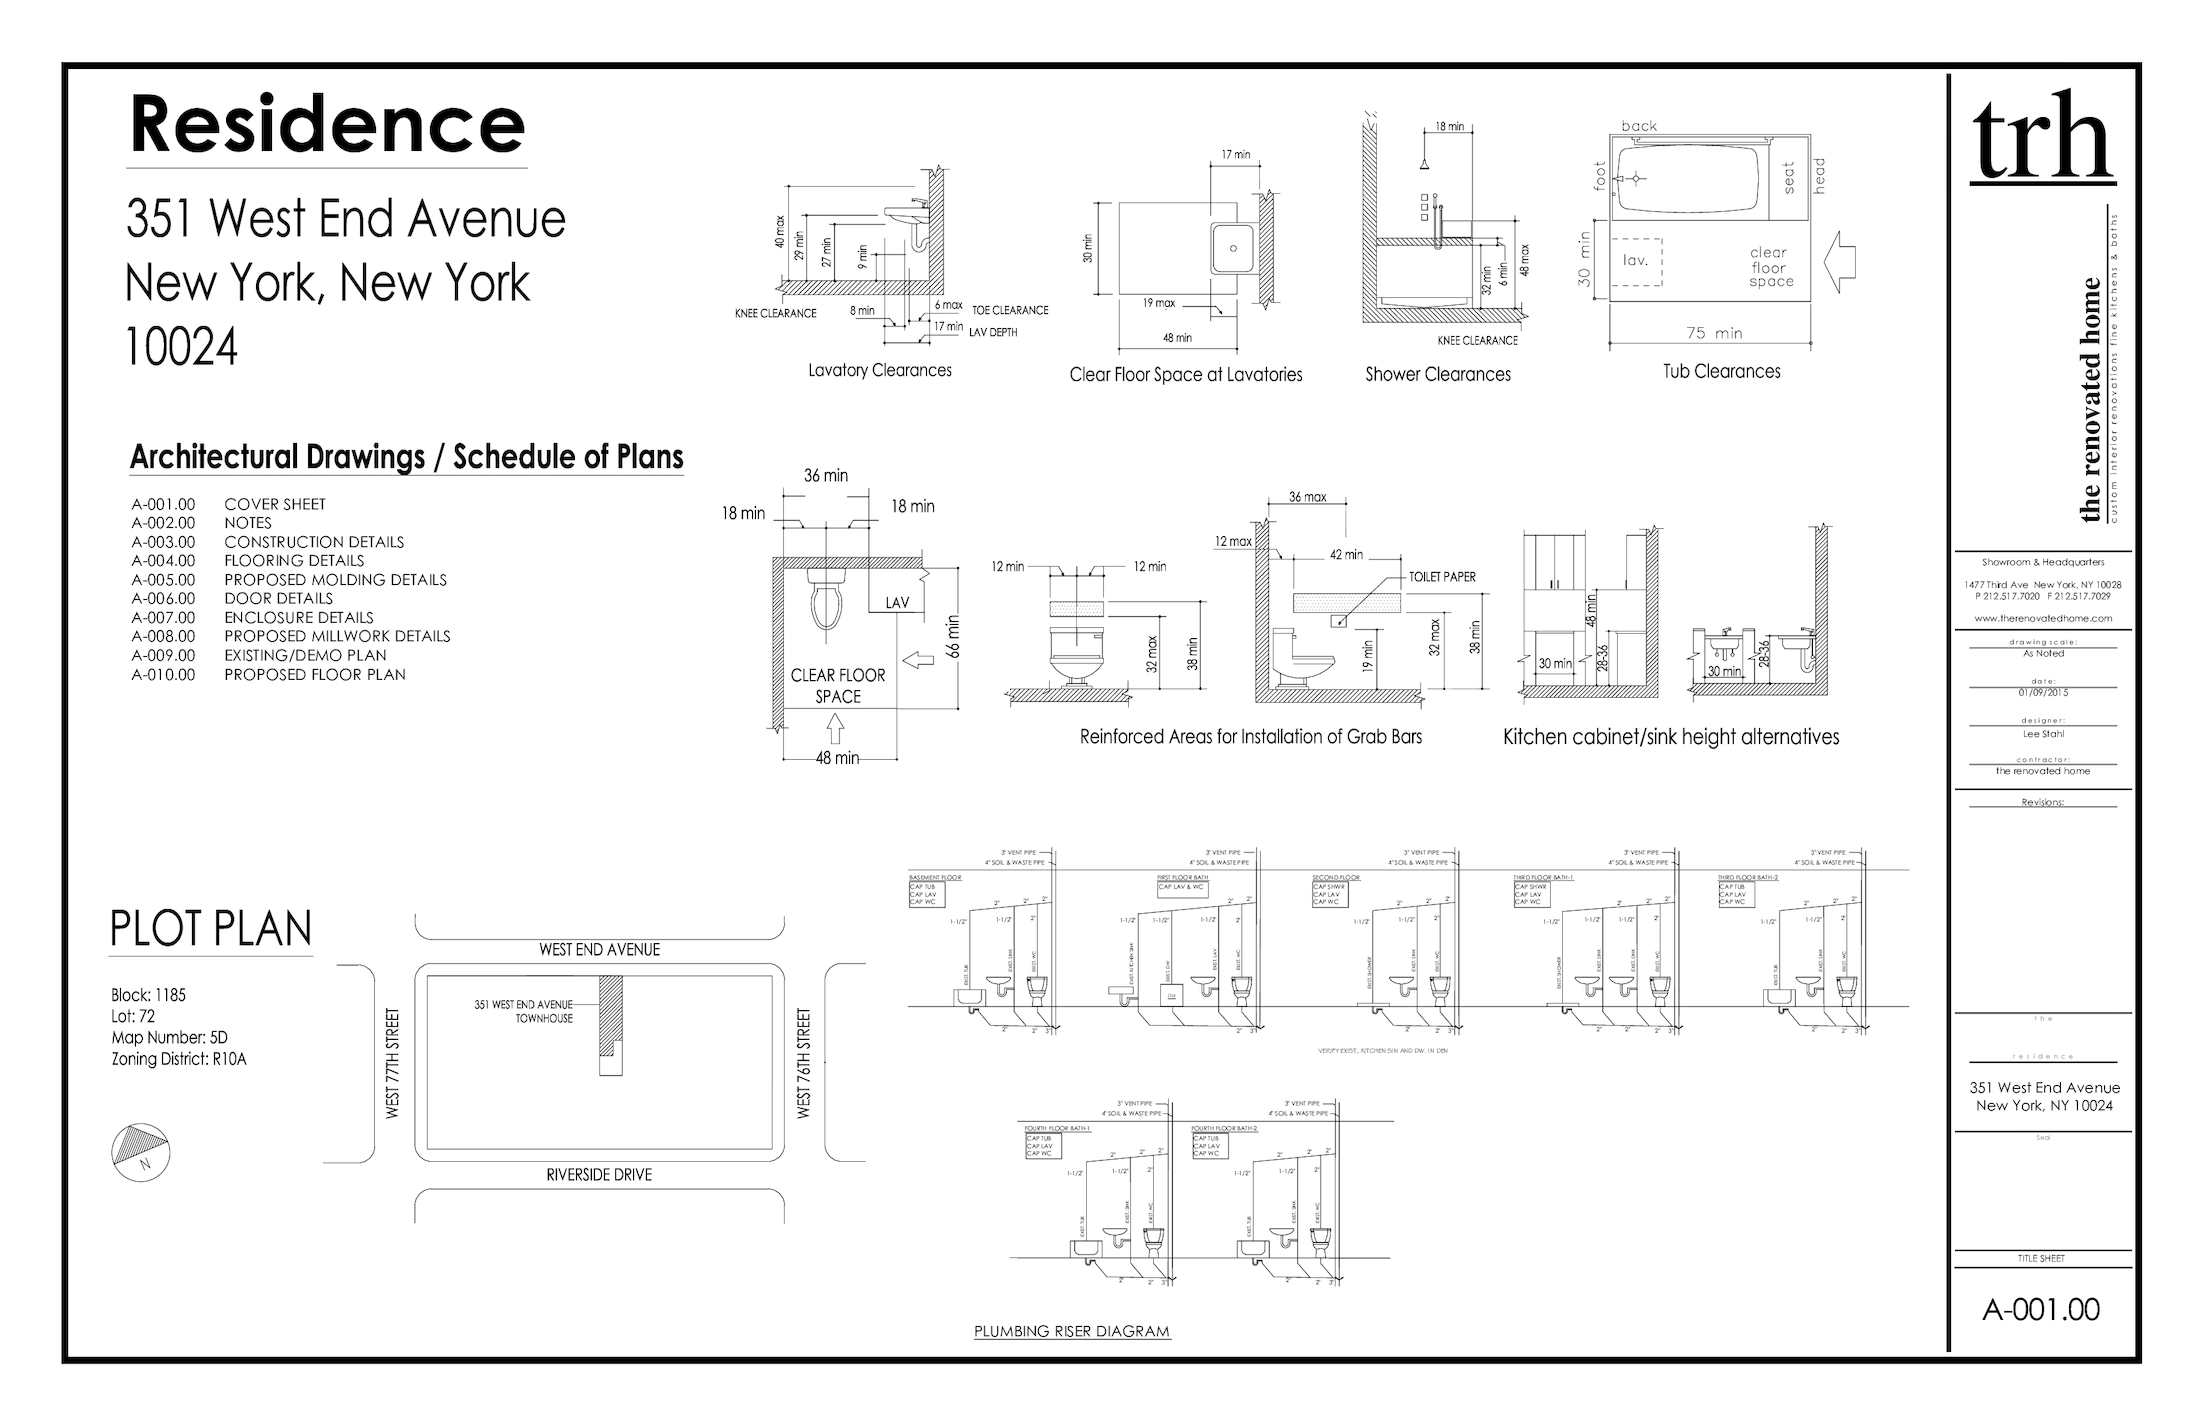 Residential Natural Gas Piping Diagram Trusted Wiring Diagrams Residencial Furnace Riser Kitchen Laundry Diy Enthusiasts U2022